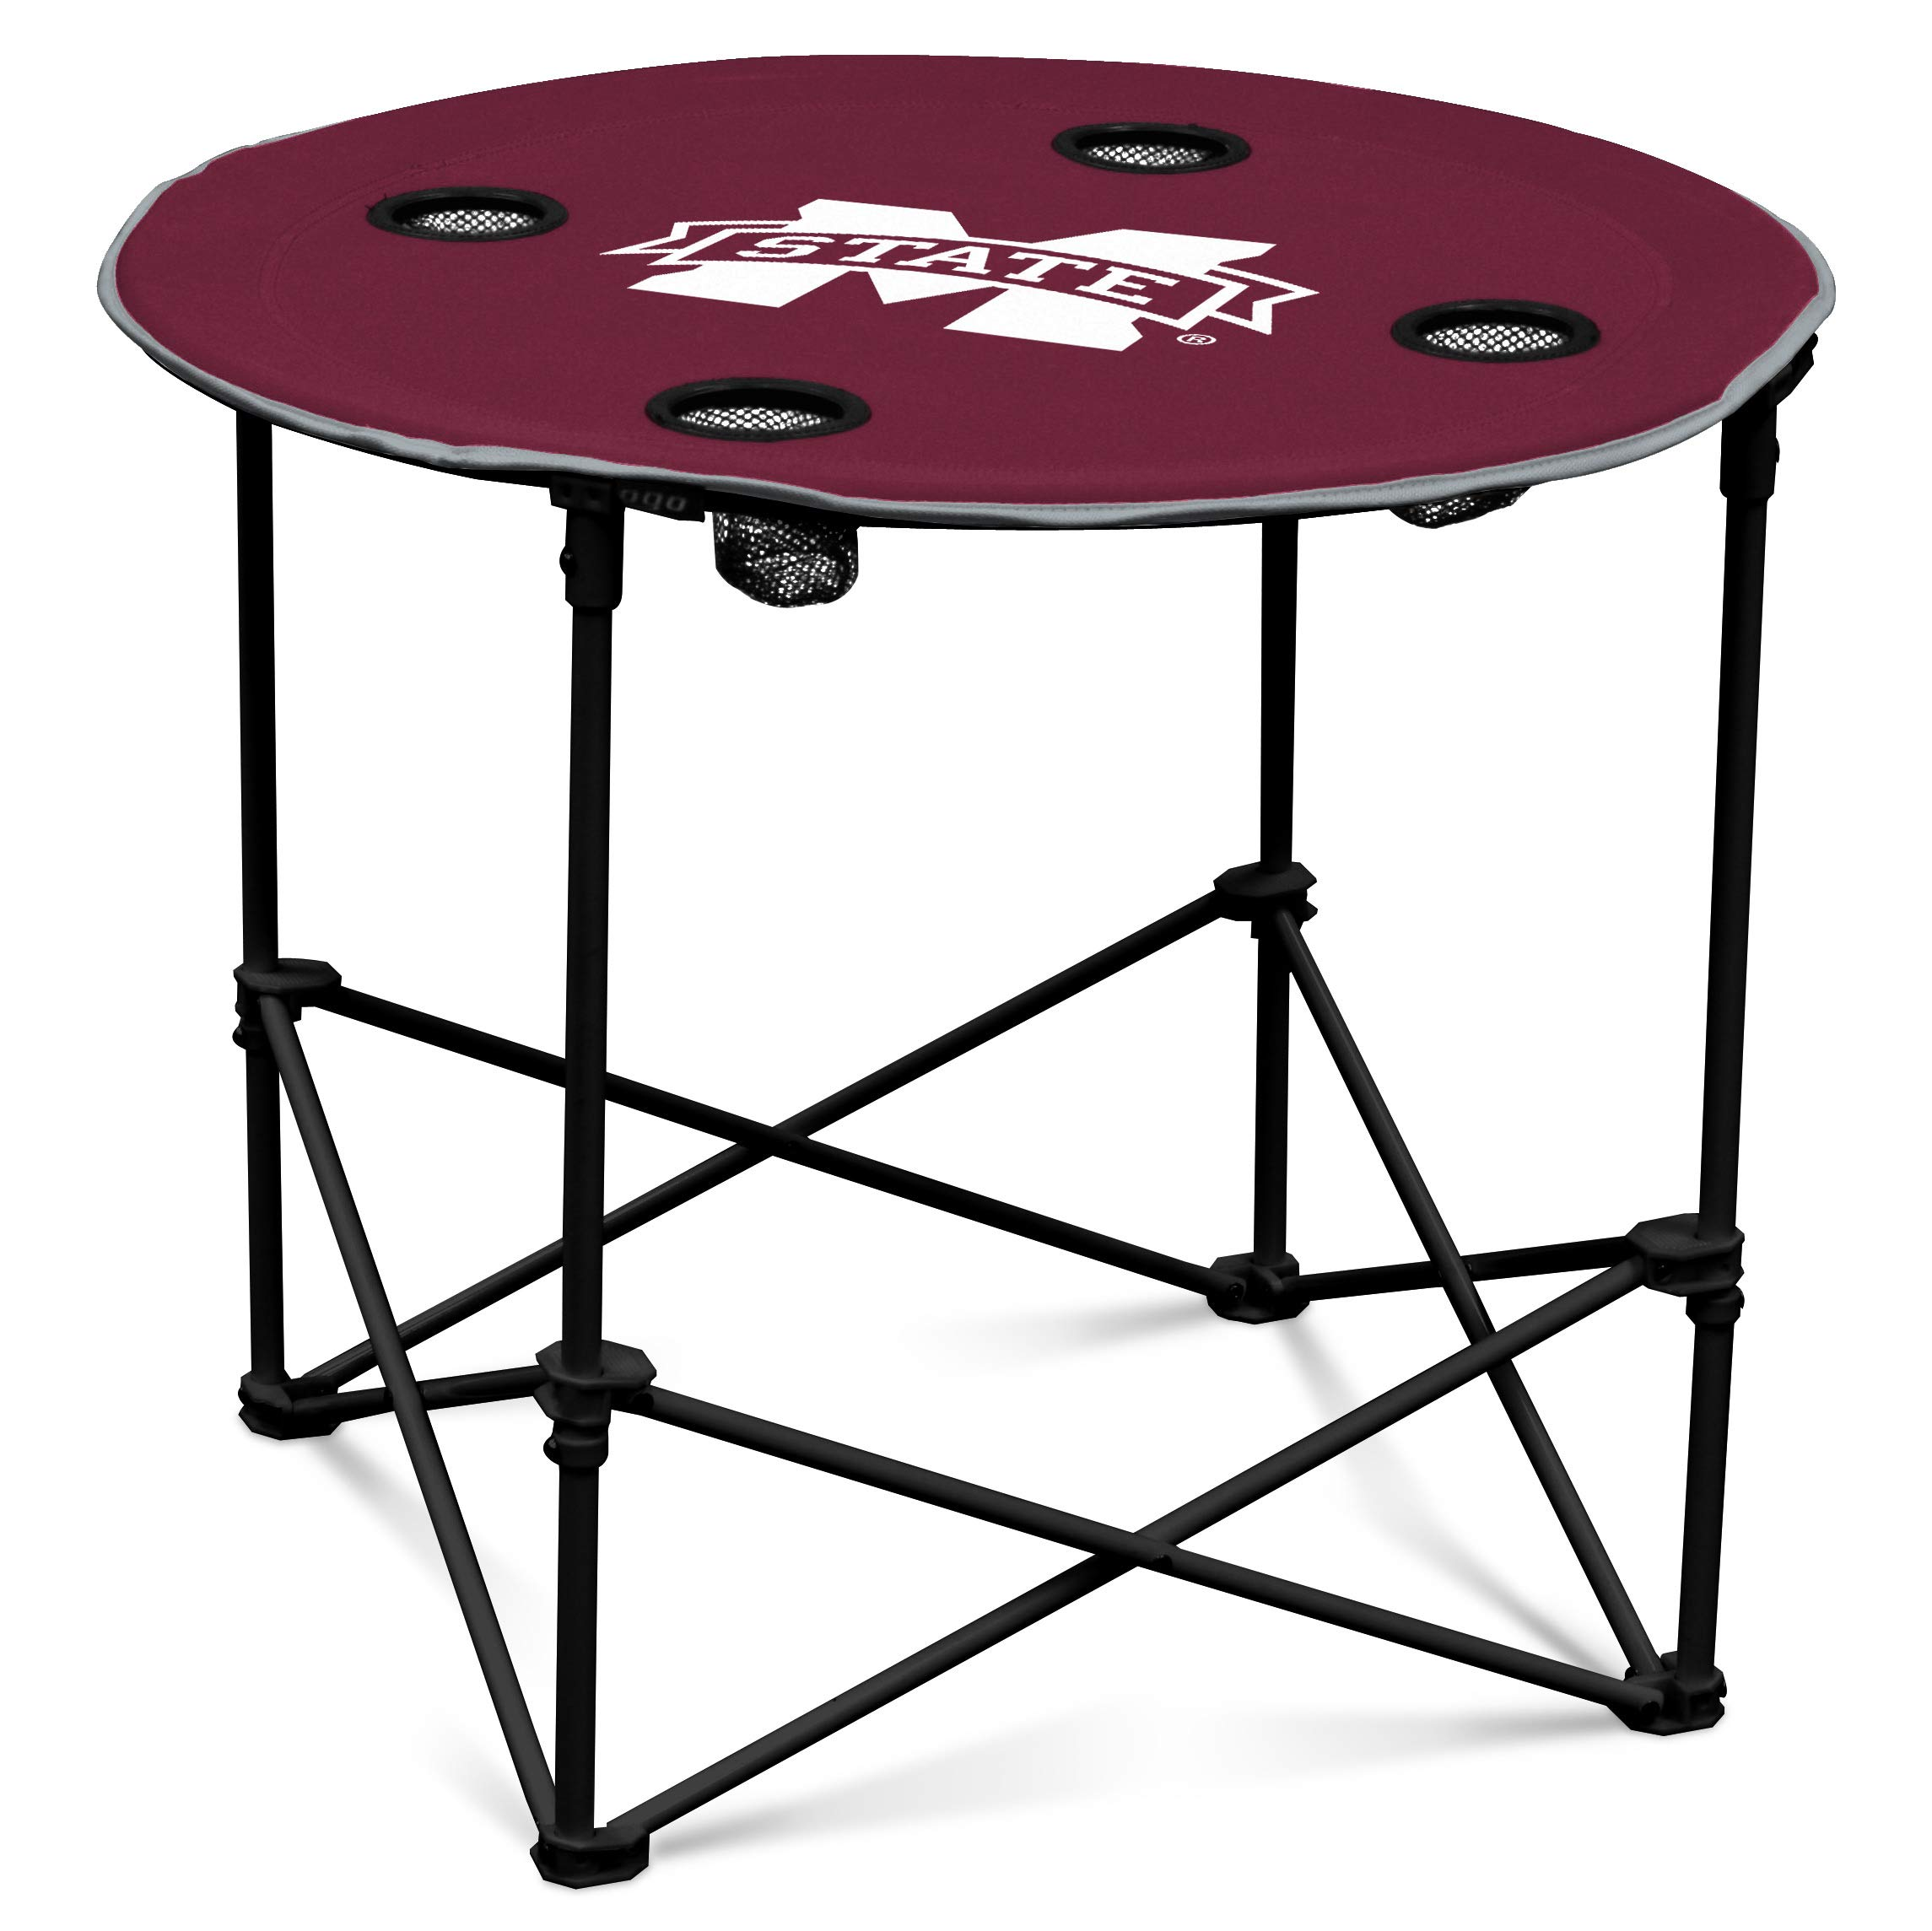 Mississippi State Bulldogs Collapsible Round Table with 4 Cup Holders and Carry Bag by Logo Brands